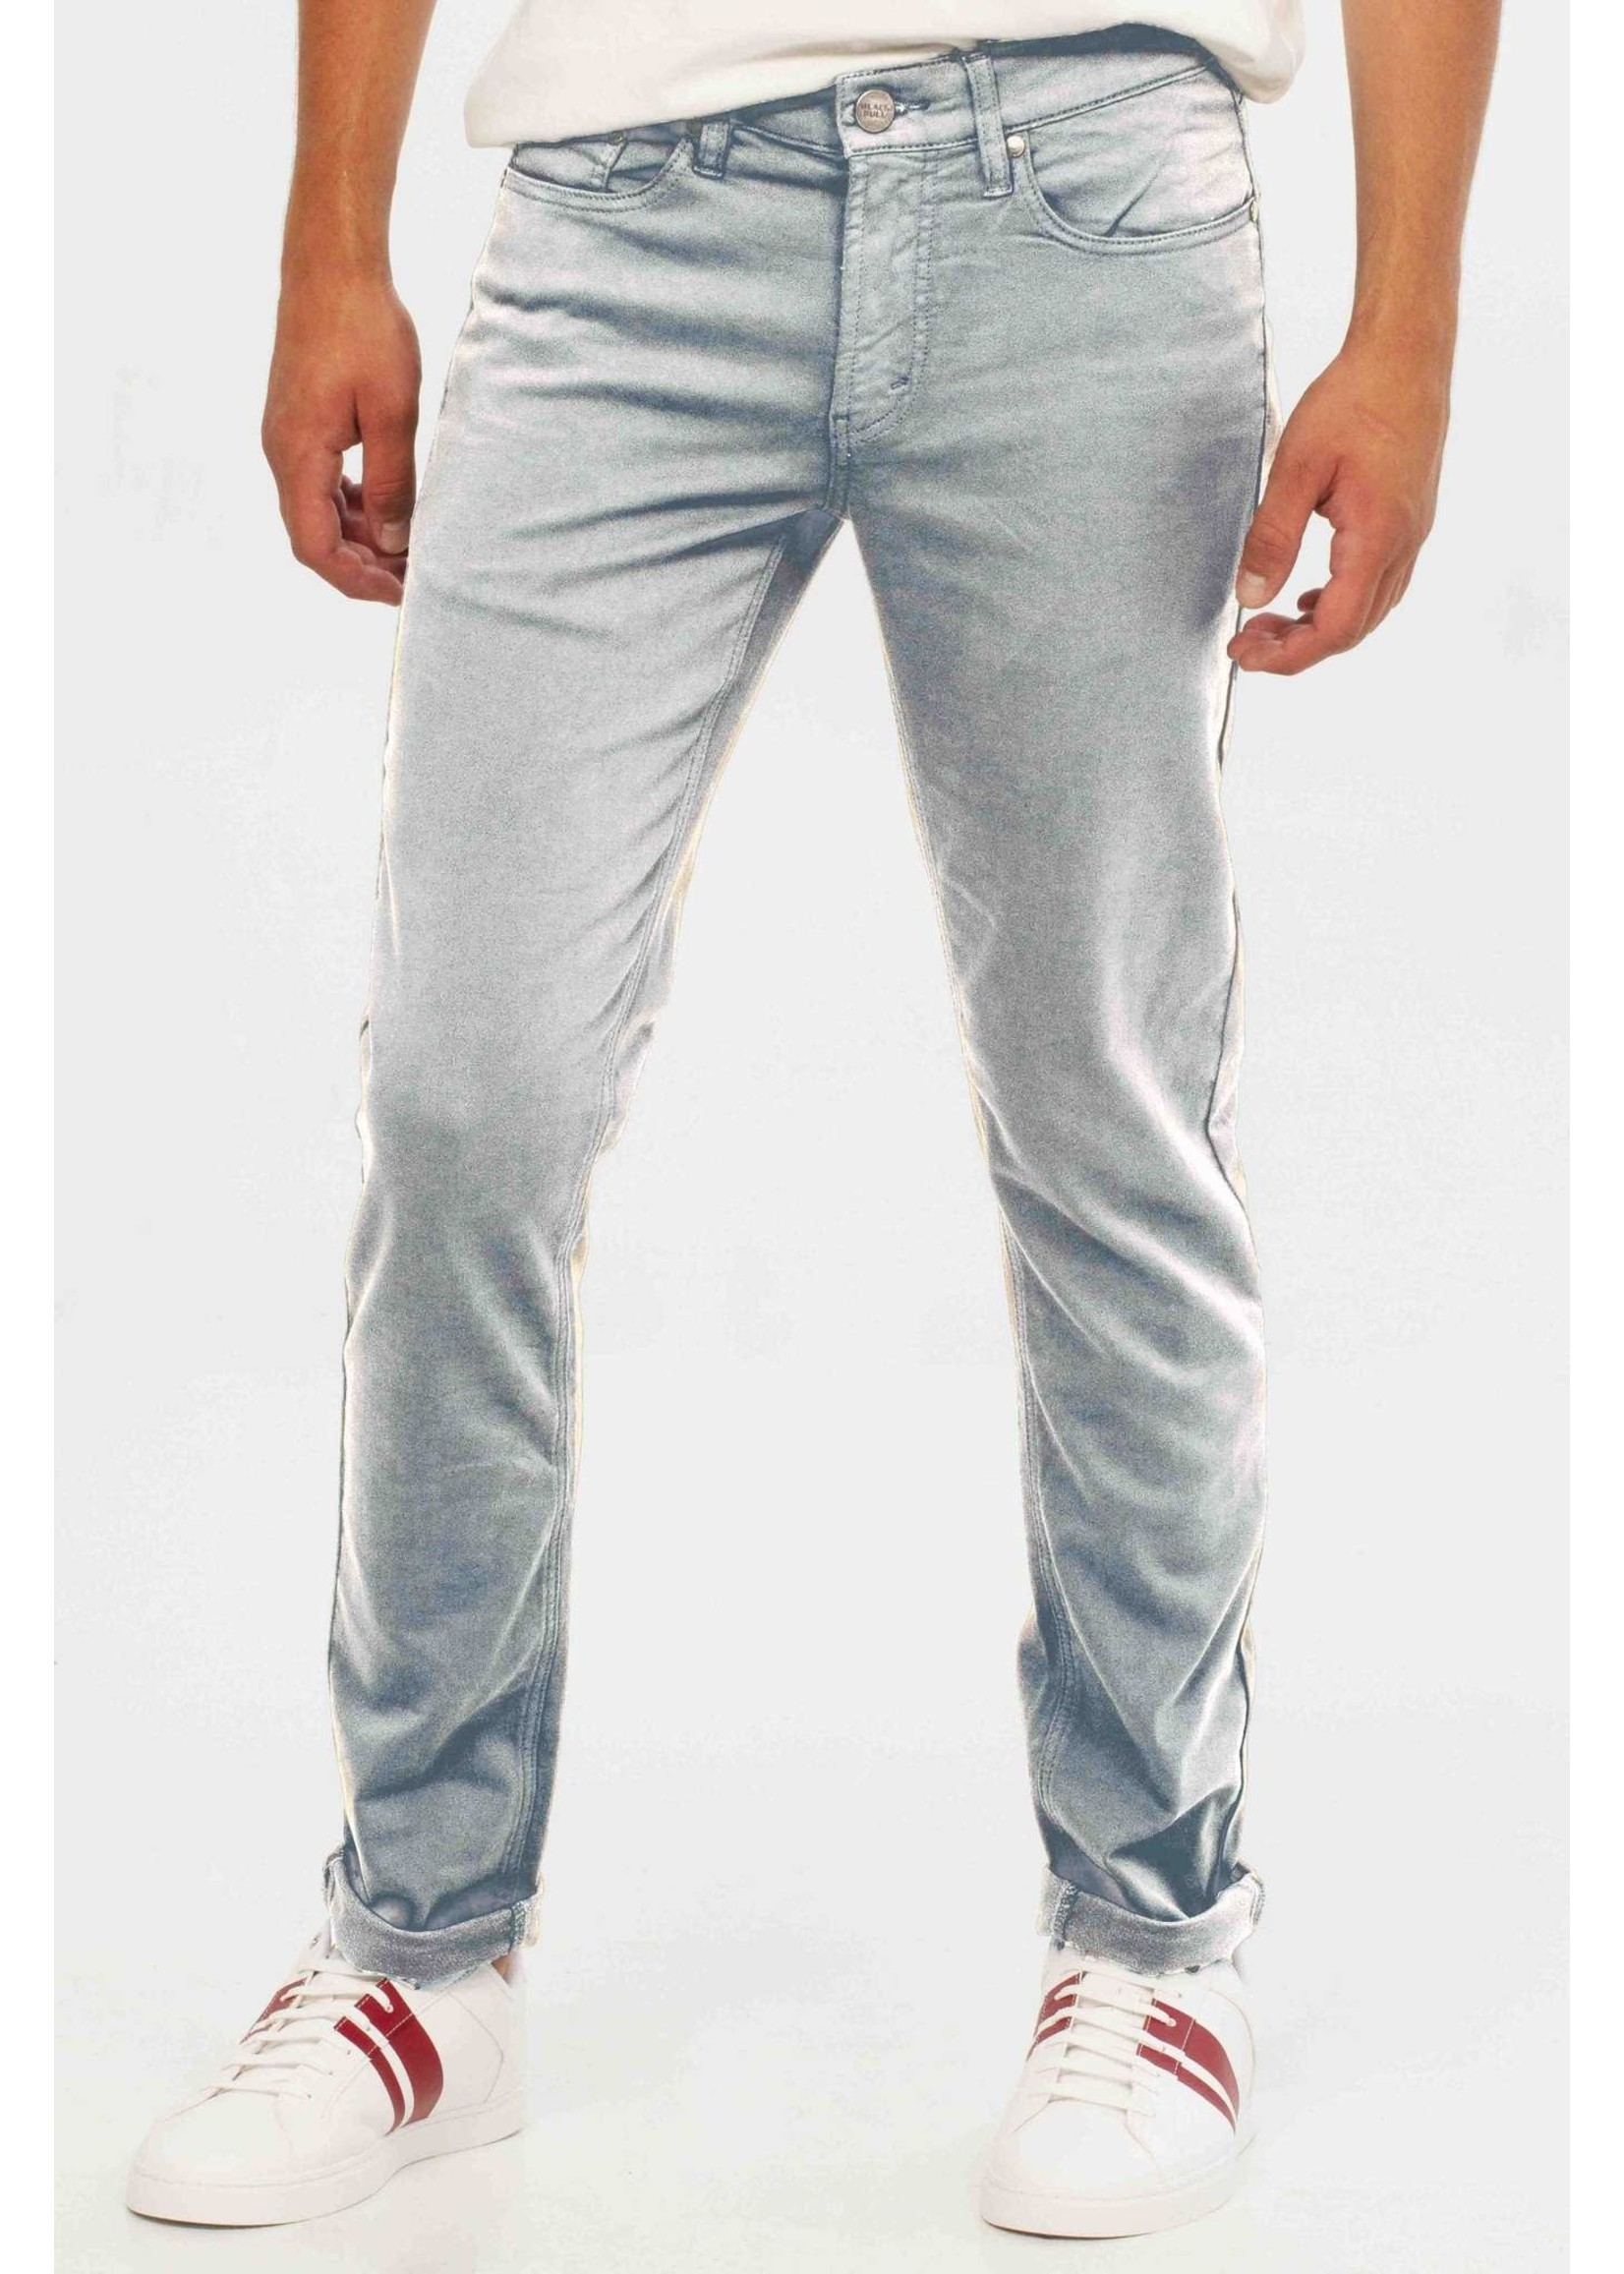 """Lois Jeans Canada The """"Mad 7770-88"""" by Lois Jeans"""